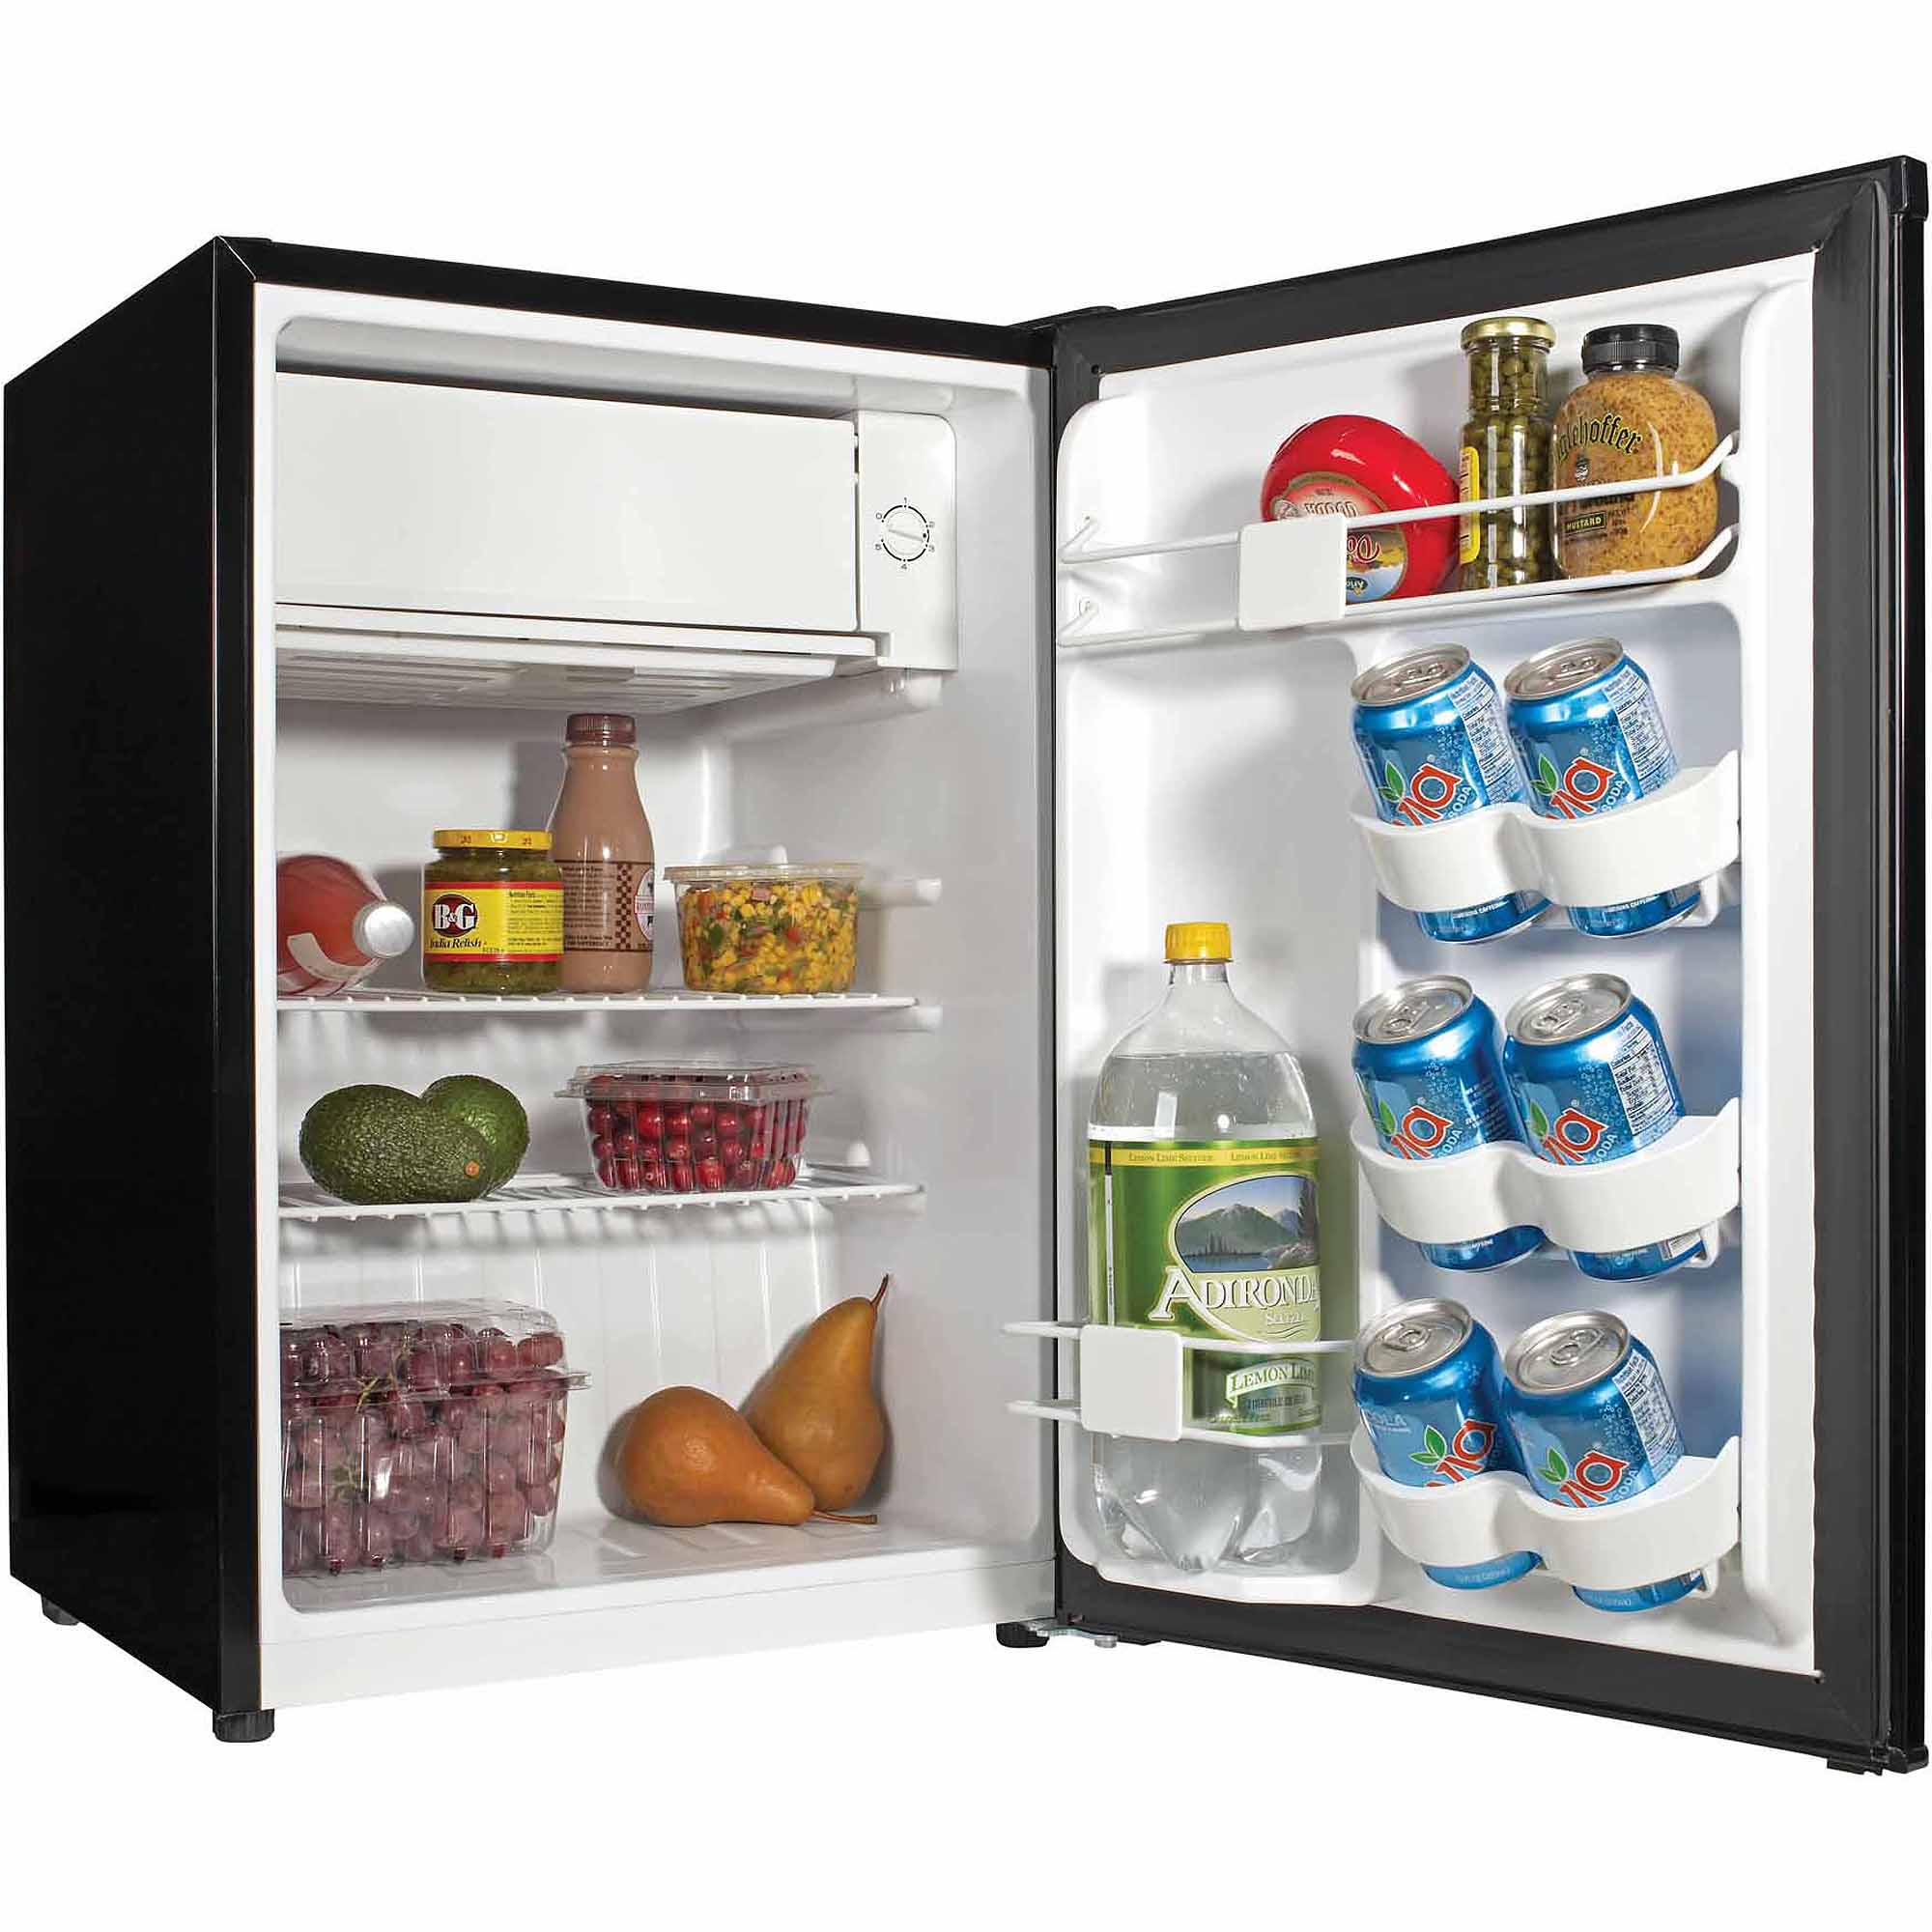 Haier 2 7 Cu Ft Single Door Compact Refrigerator Hc27sw20rb Black